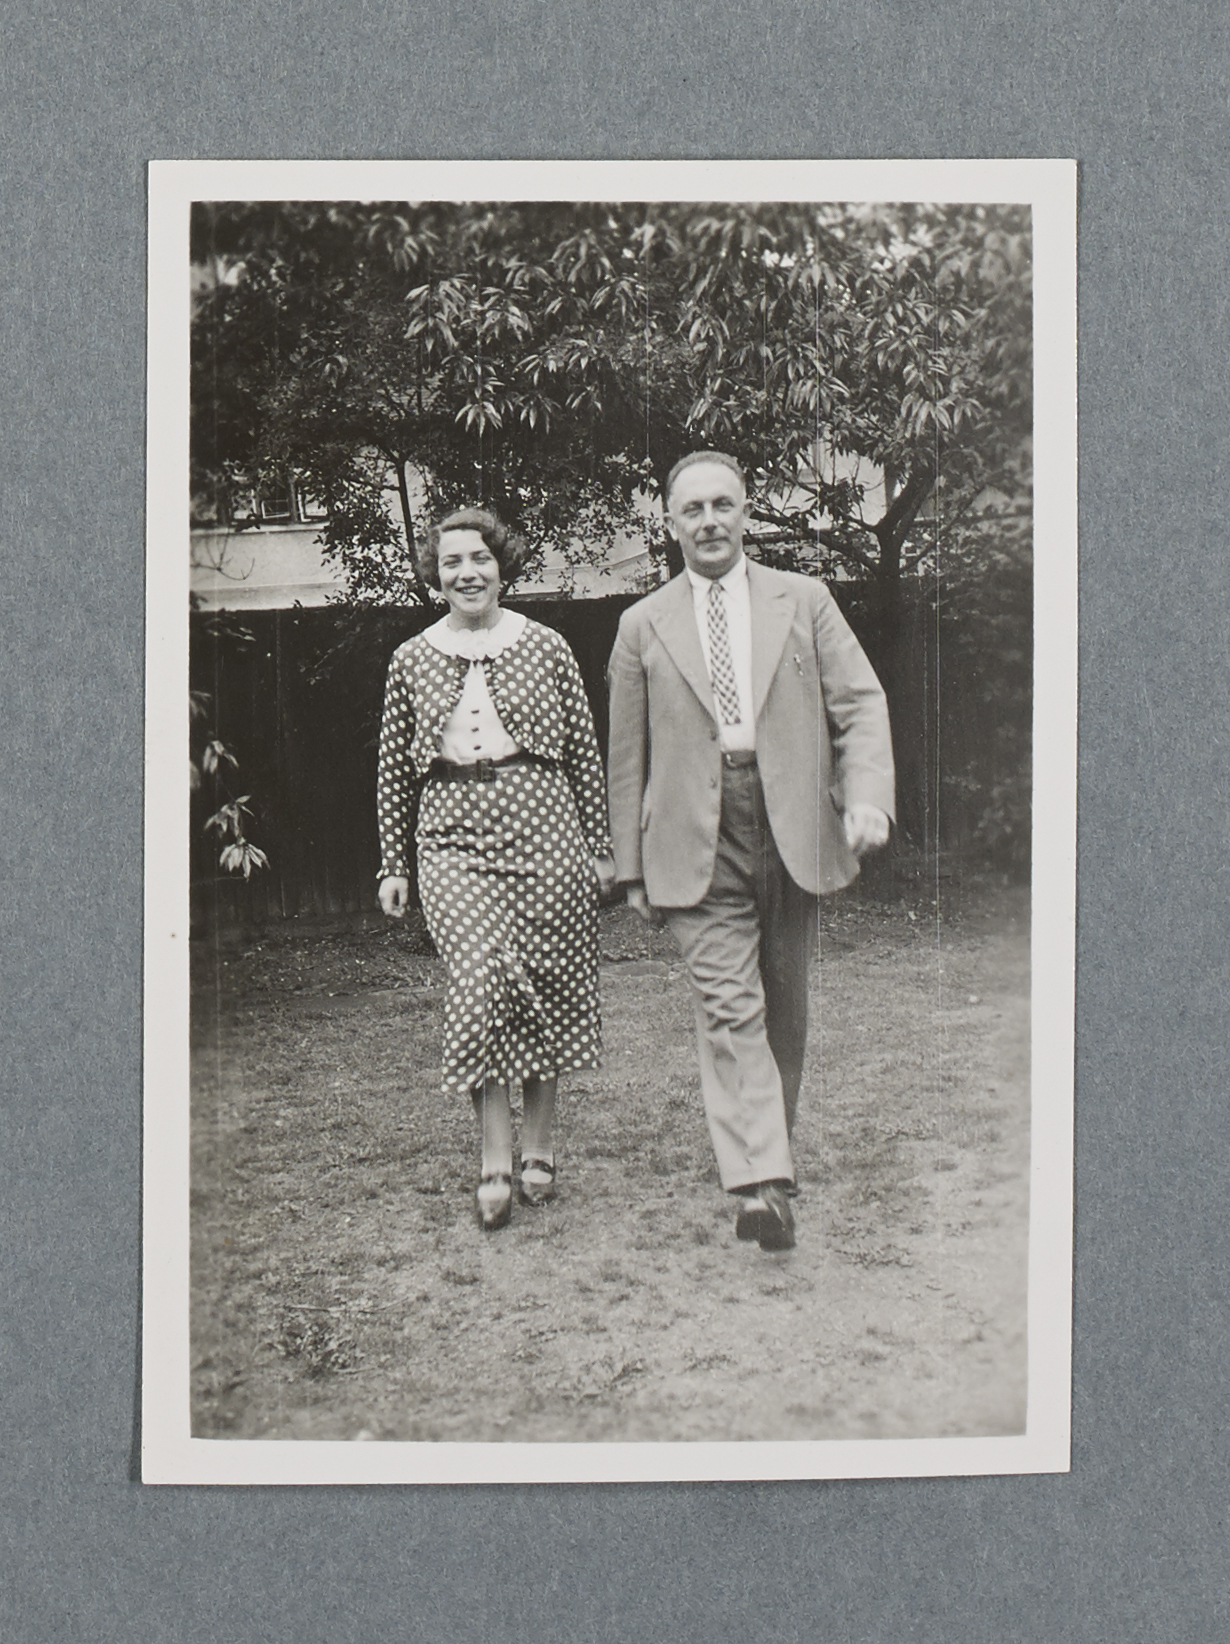 Black and white photo of a young woman and a middle aged man walking towards the camera, both smiling